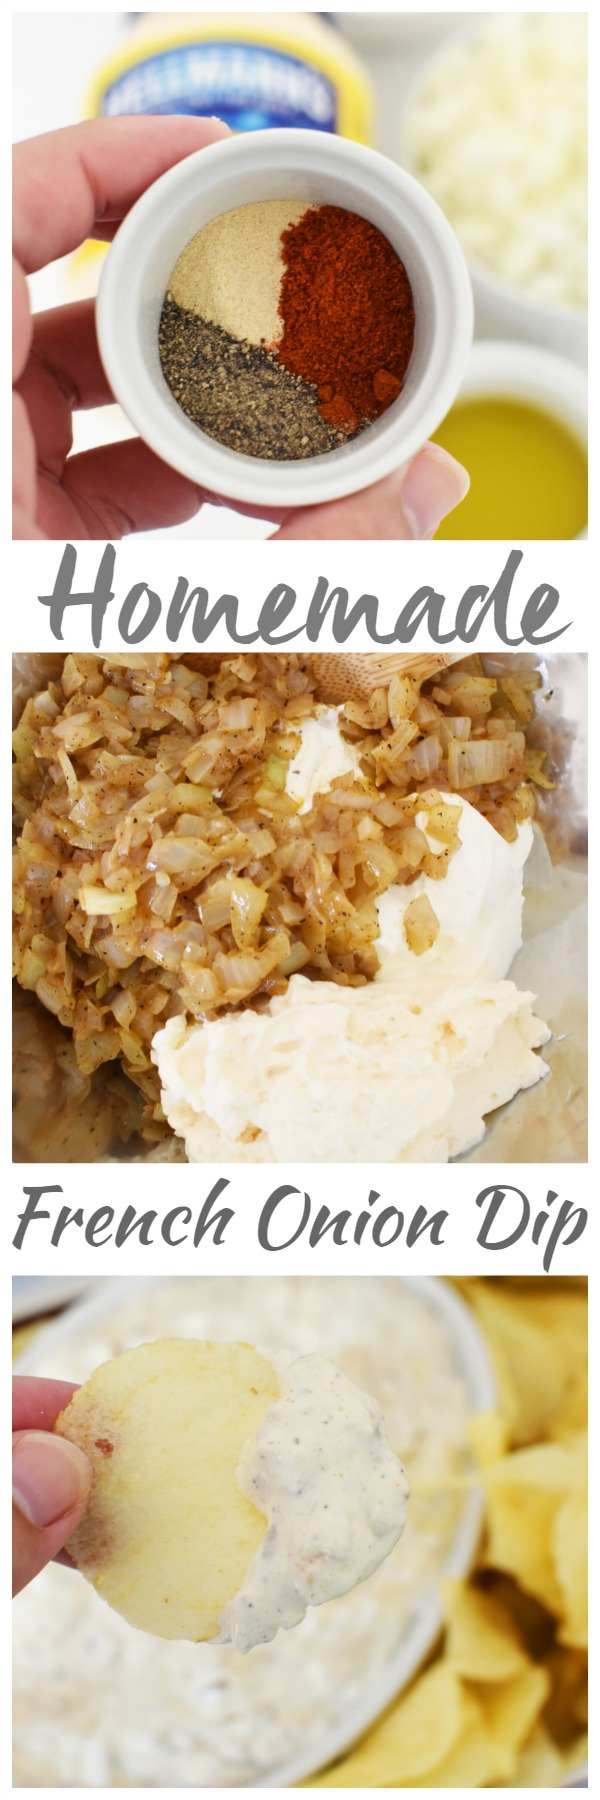 Homemade Caramelized French Onion Dip